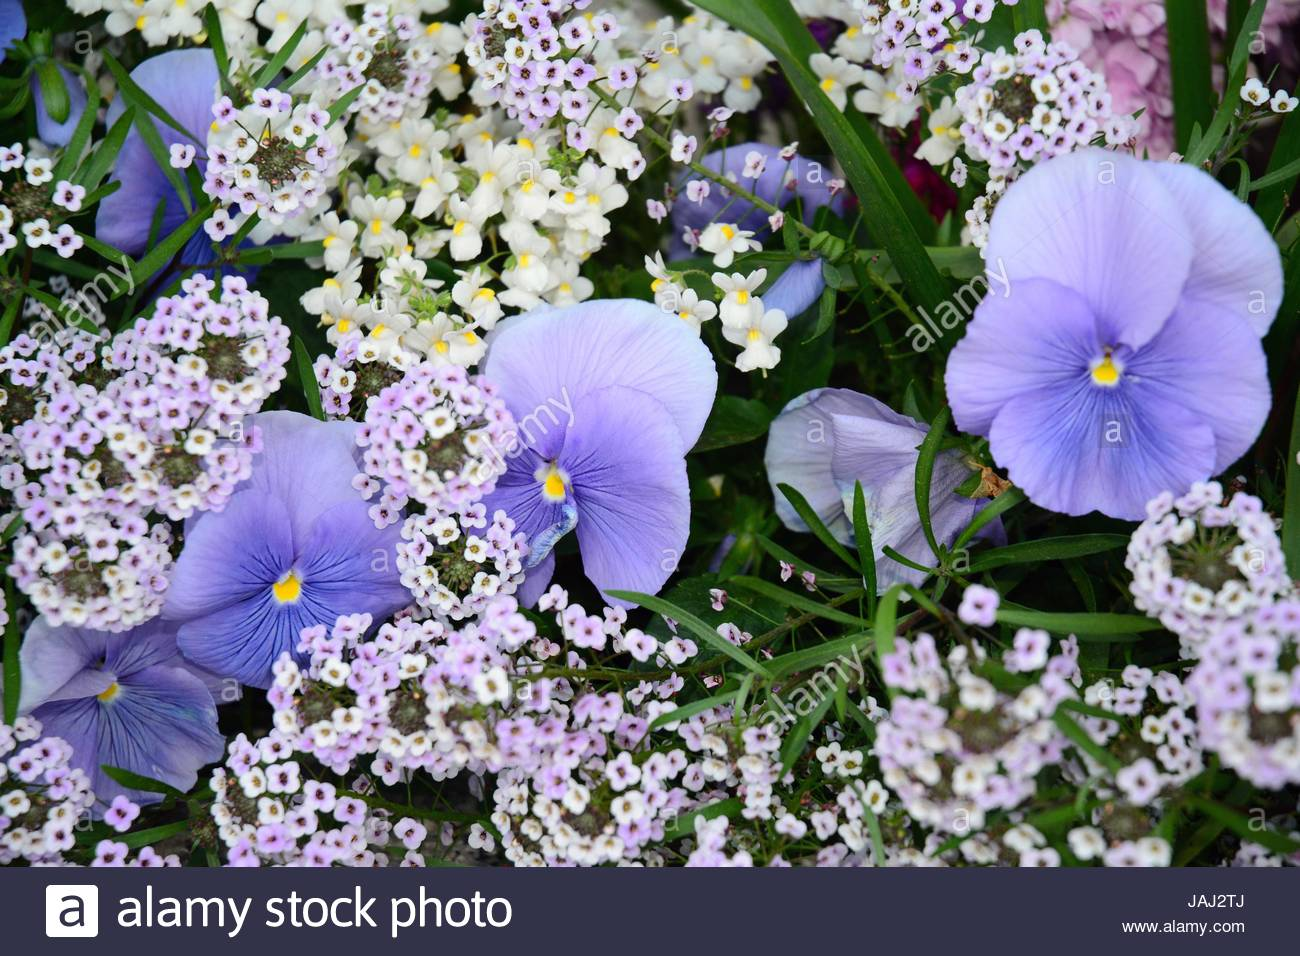 Blue pansies growing among other delicate small flowers. - Stock Image